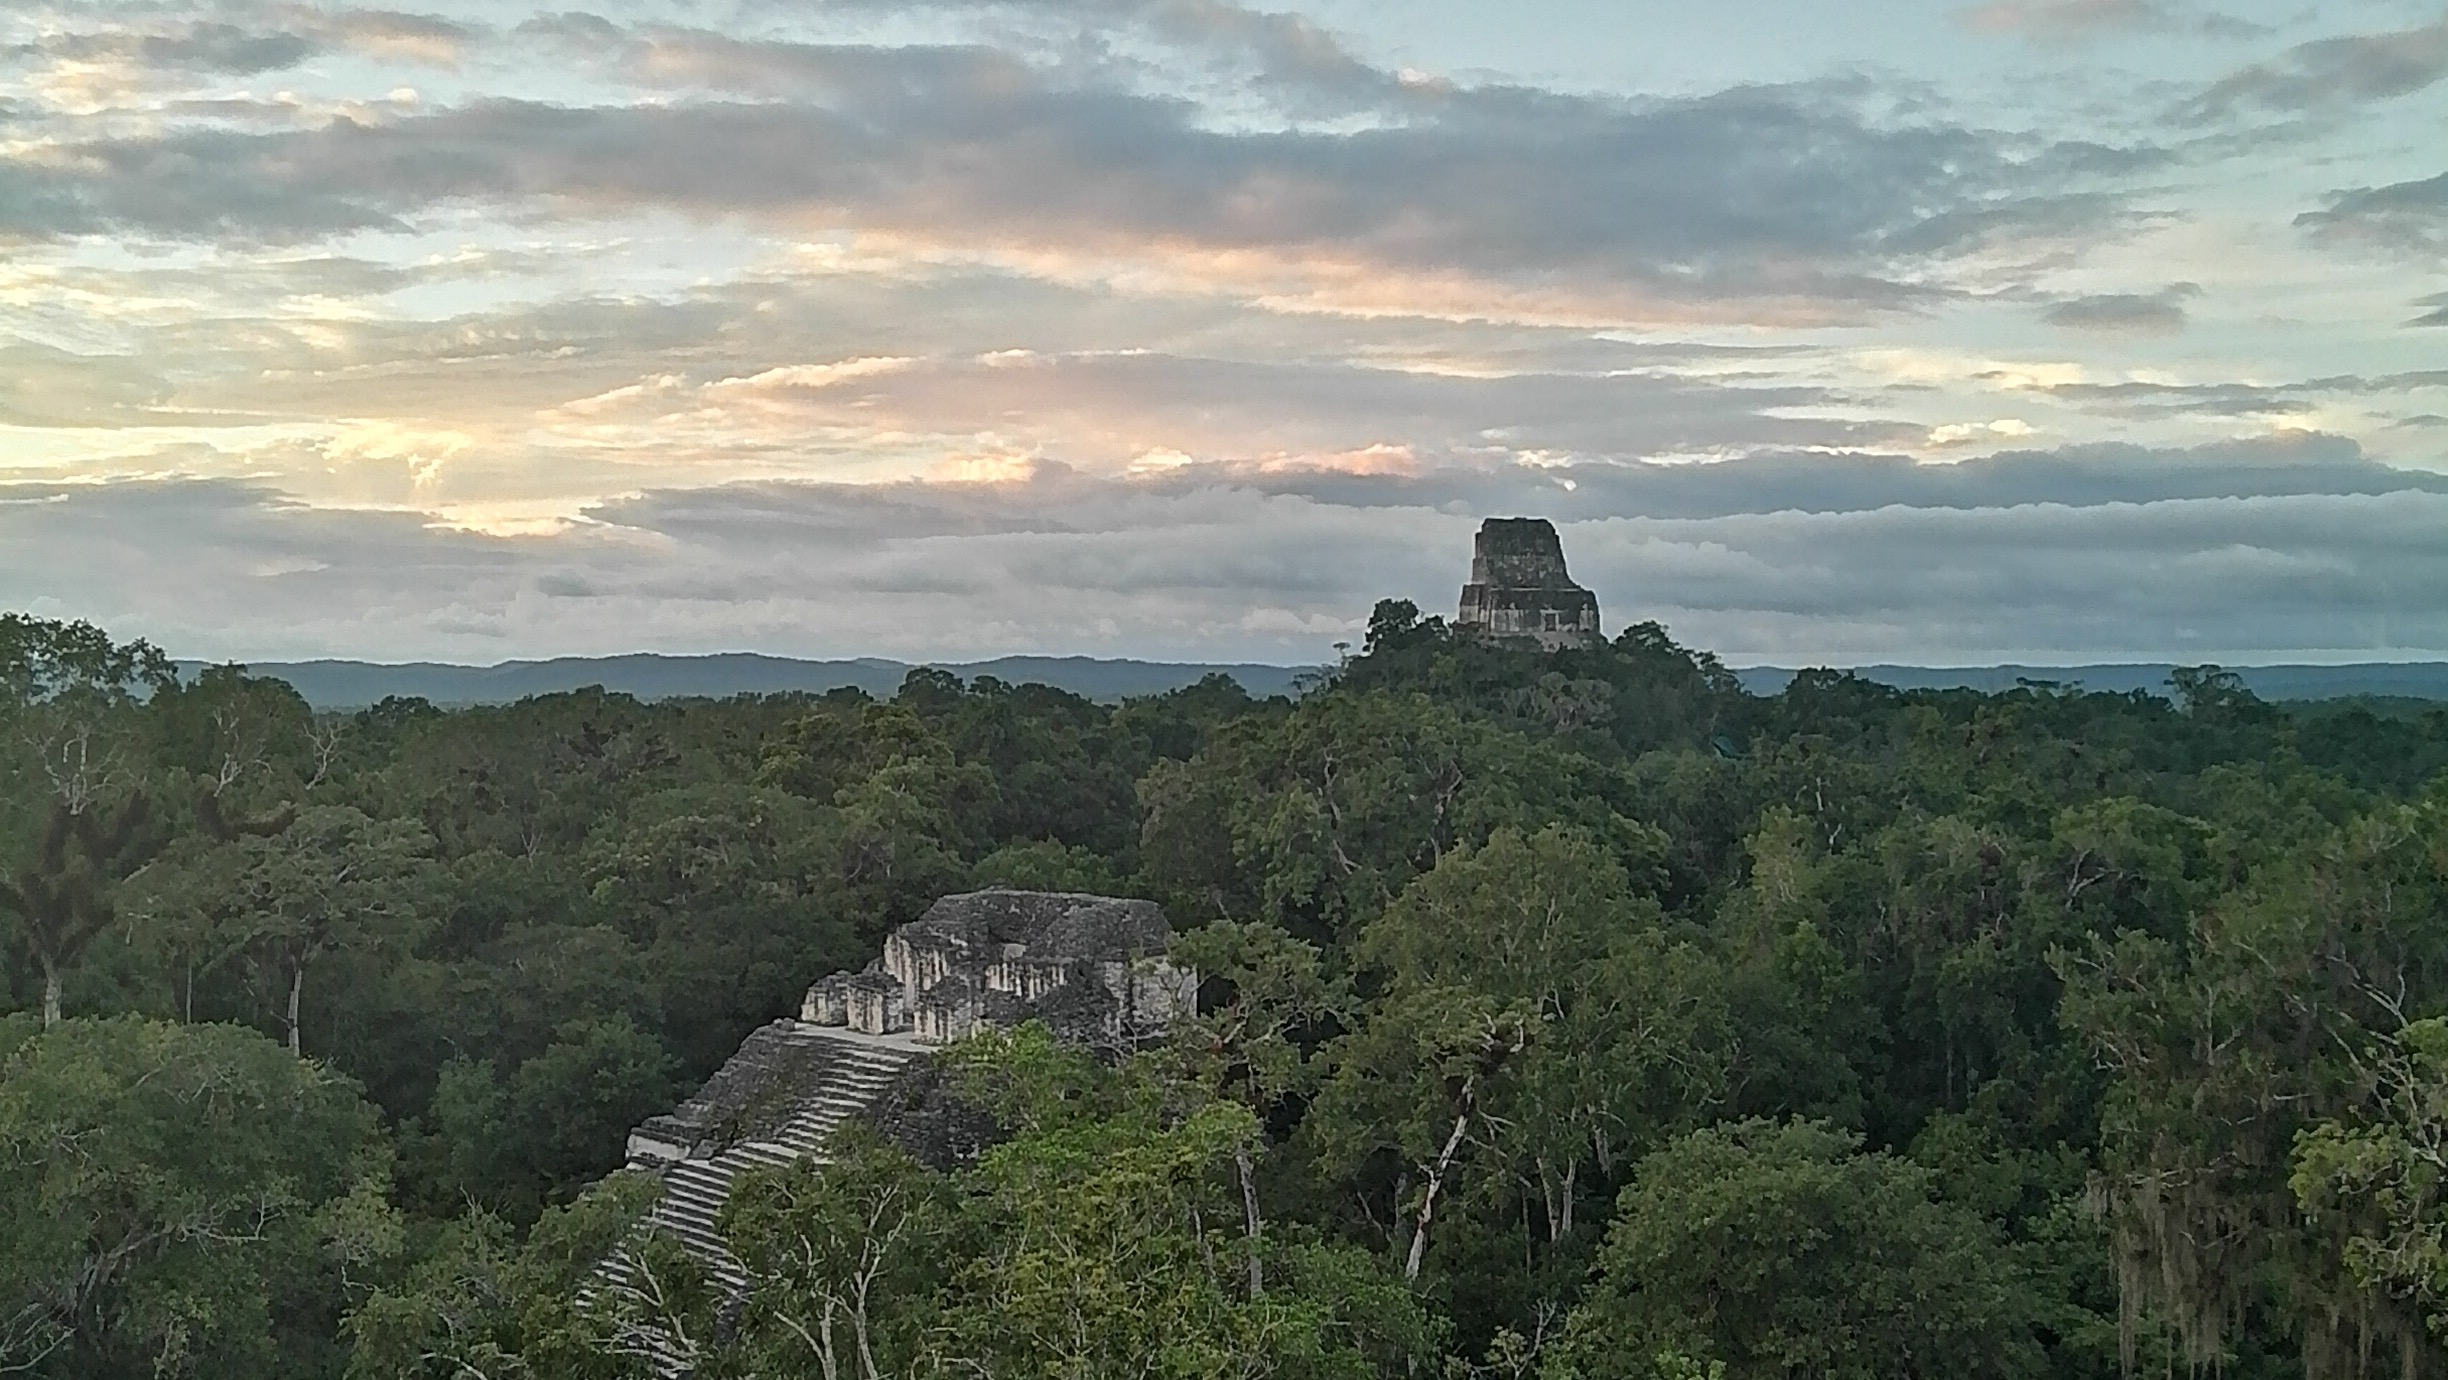 Ruins of Tikal, an ancient pyramid in Guatemala